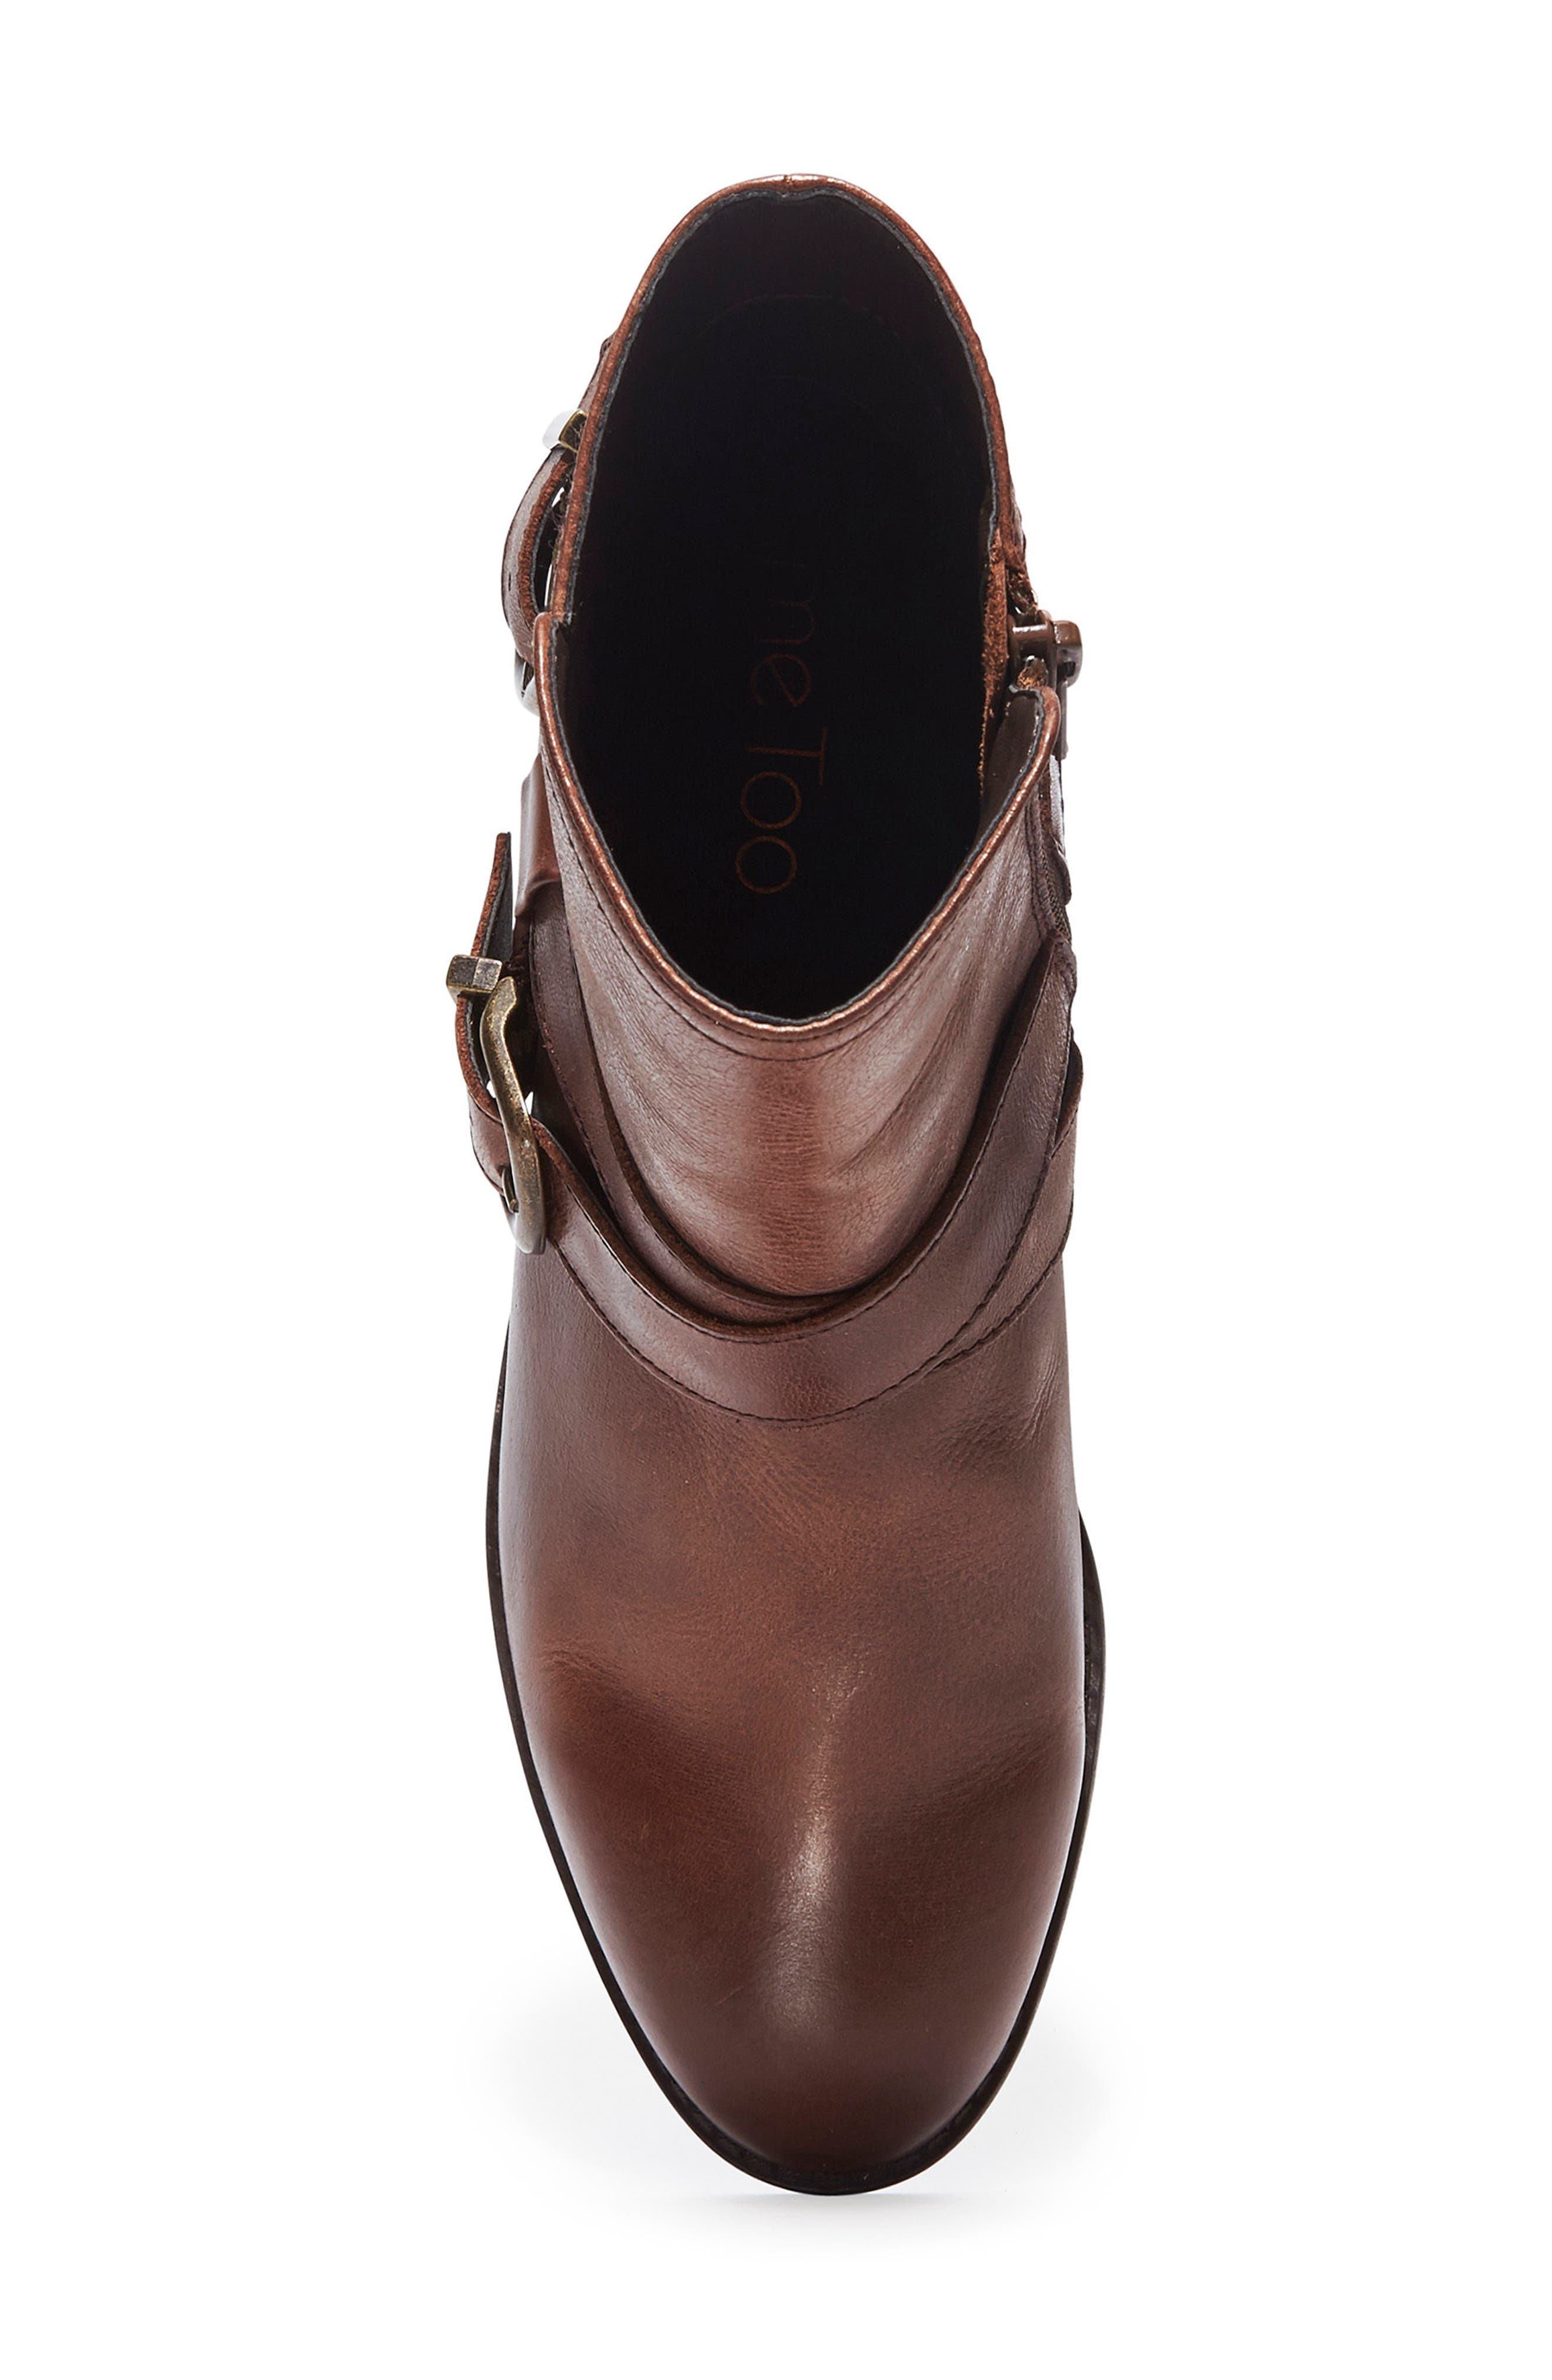 Zuri Buckle Boot,                             Alternate thumbnail 5, color,                             Chocolate Leather